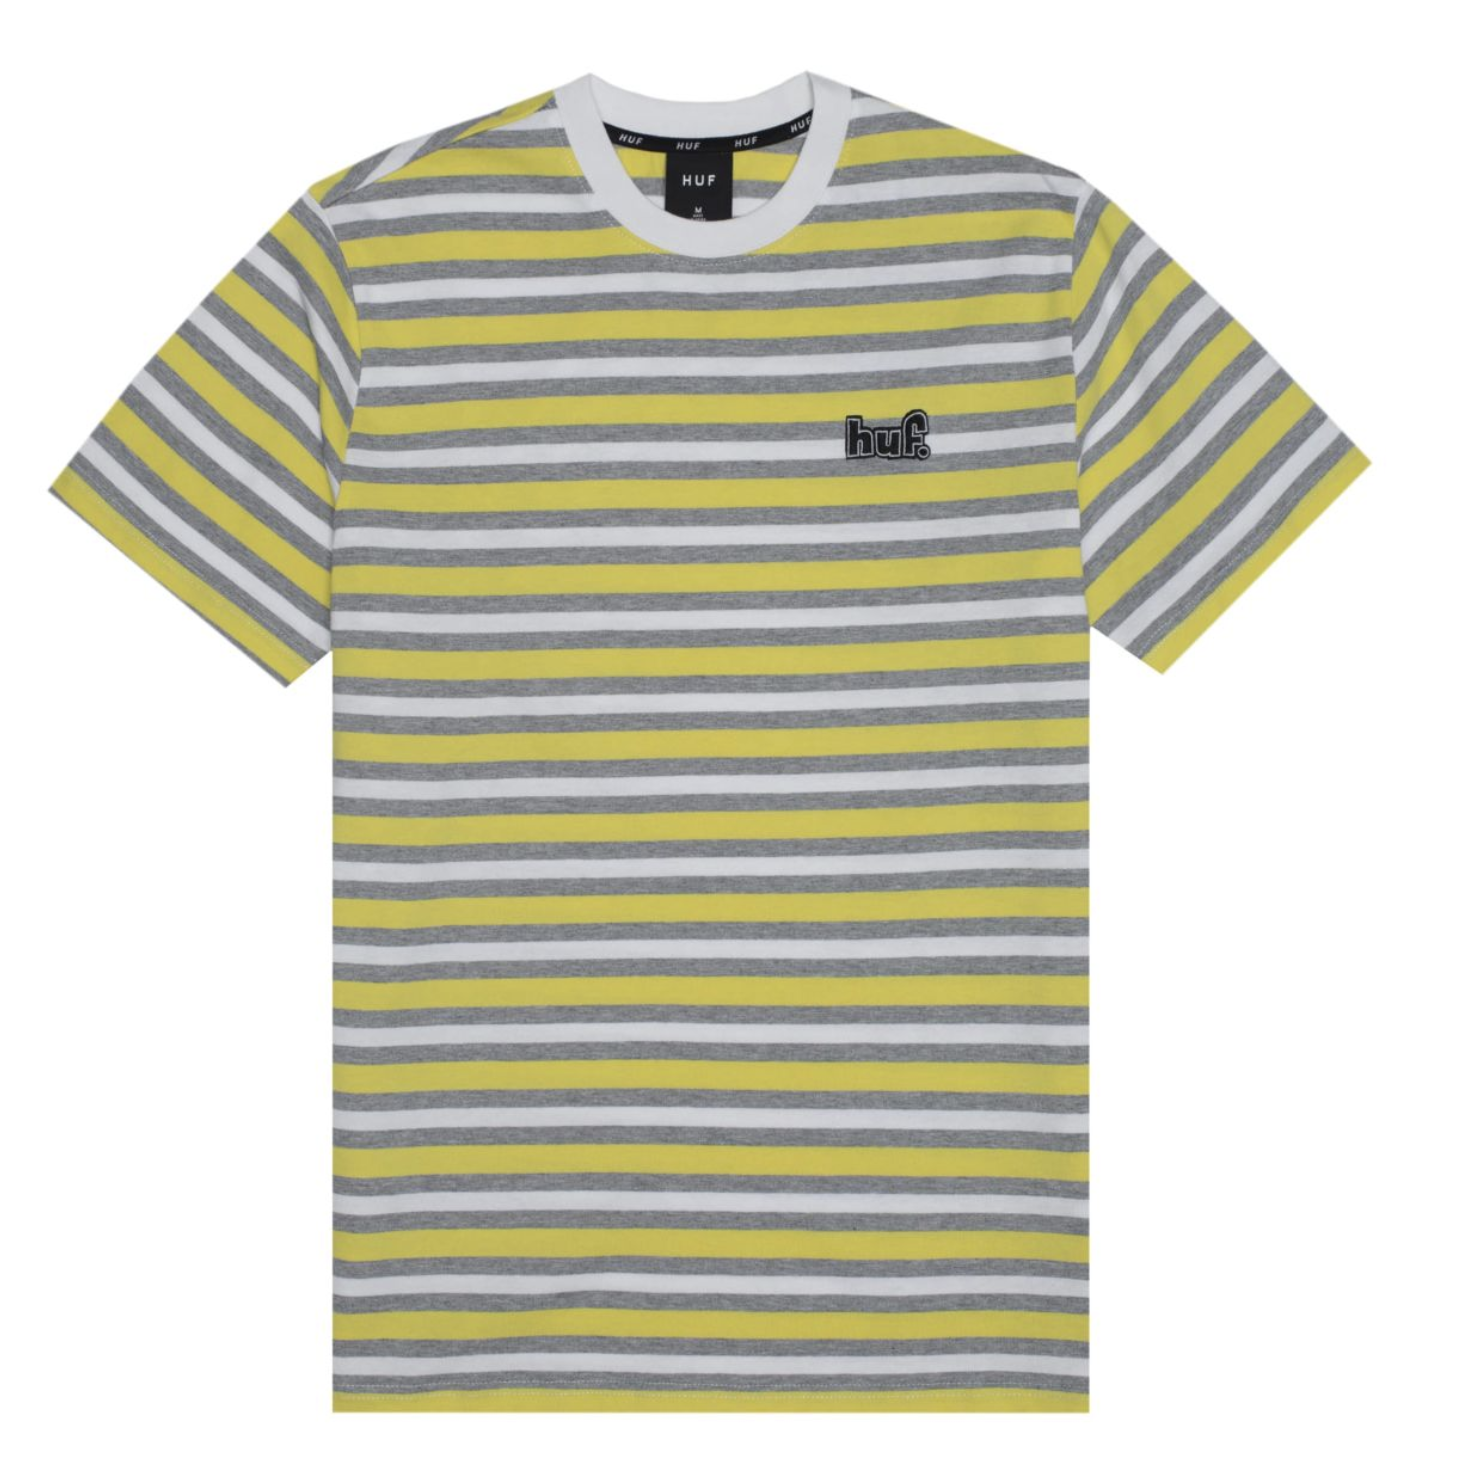 HUF Rockaway Knit Top Aurora Yellow